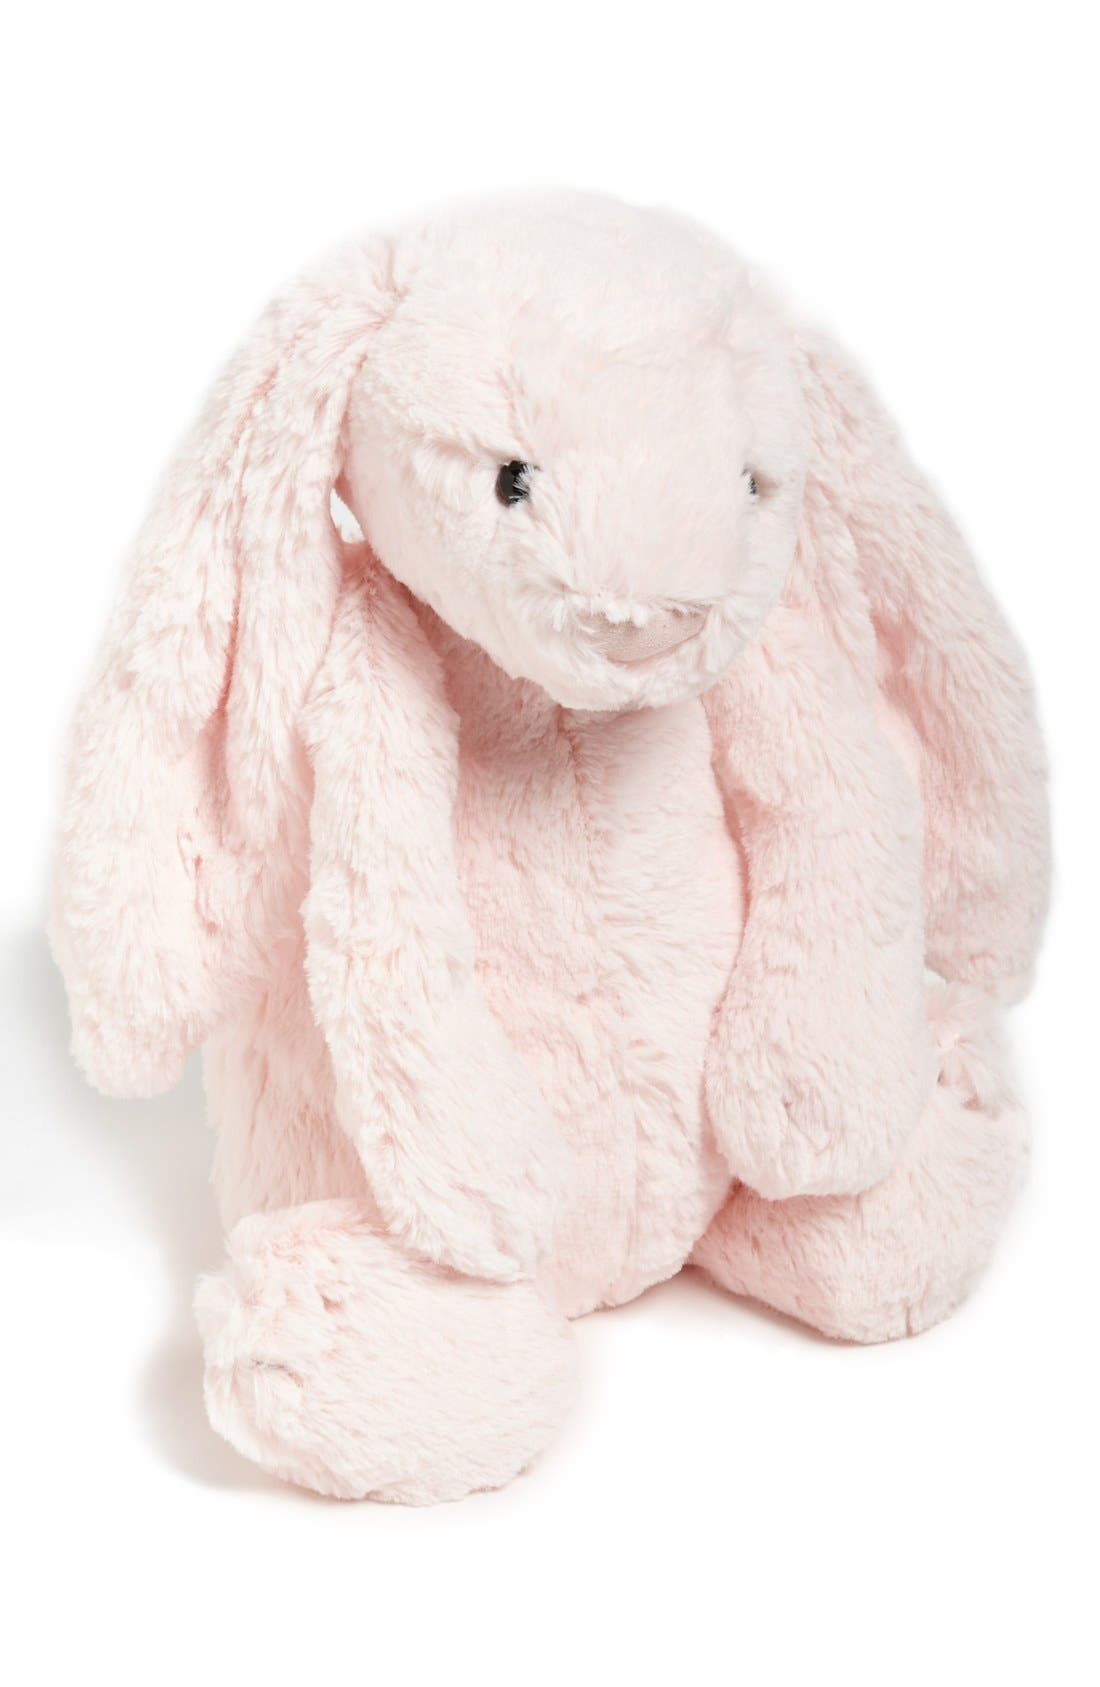 Main Image - Jellycat 'Bashful Bunny' Stuffed Animal